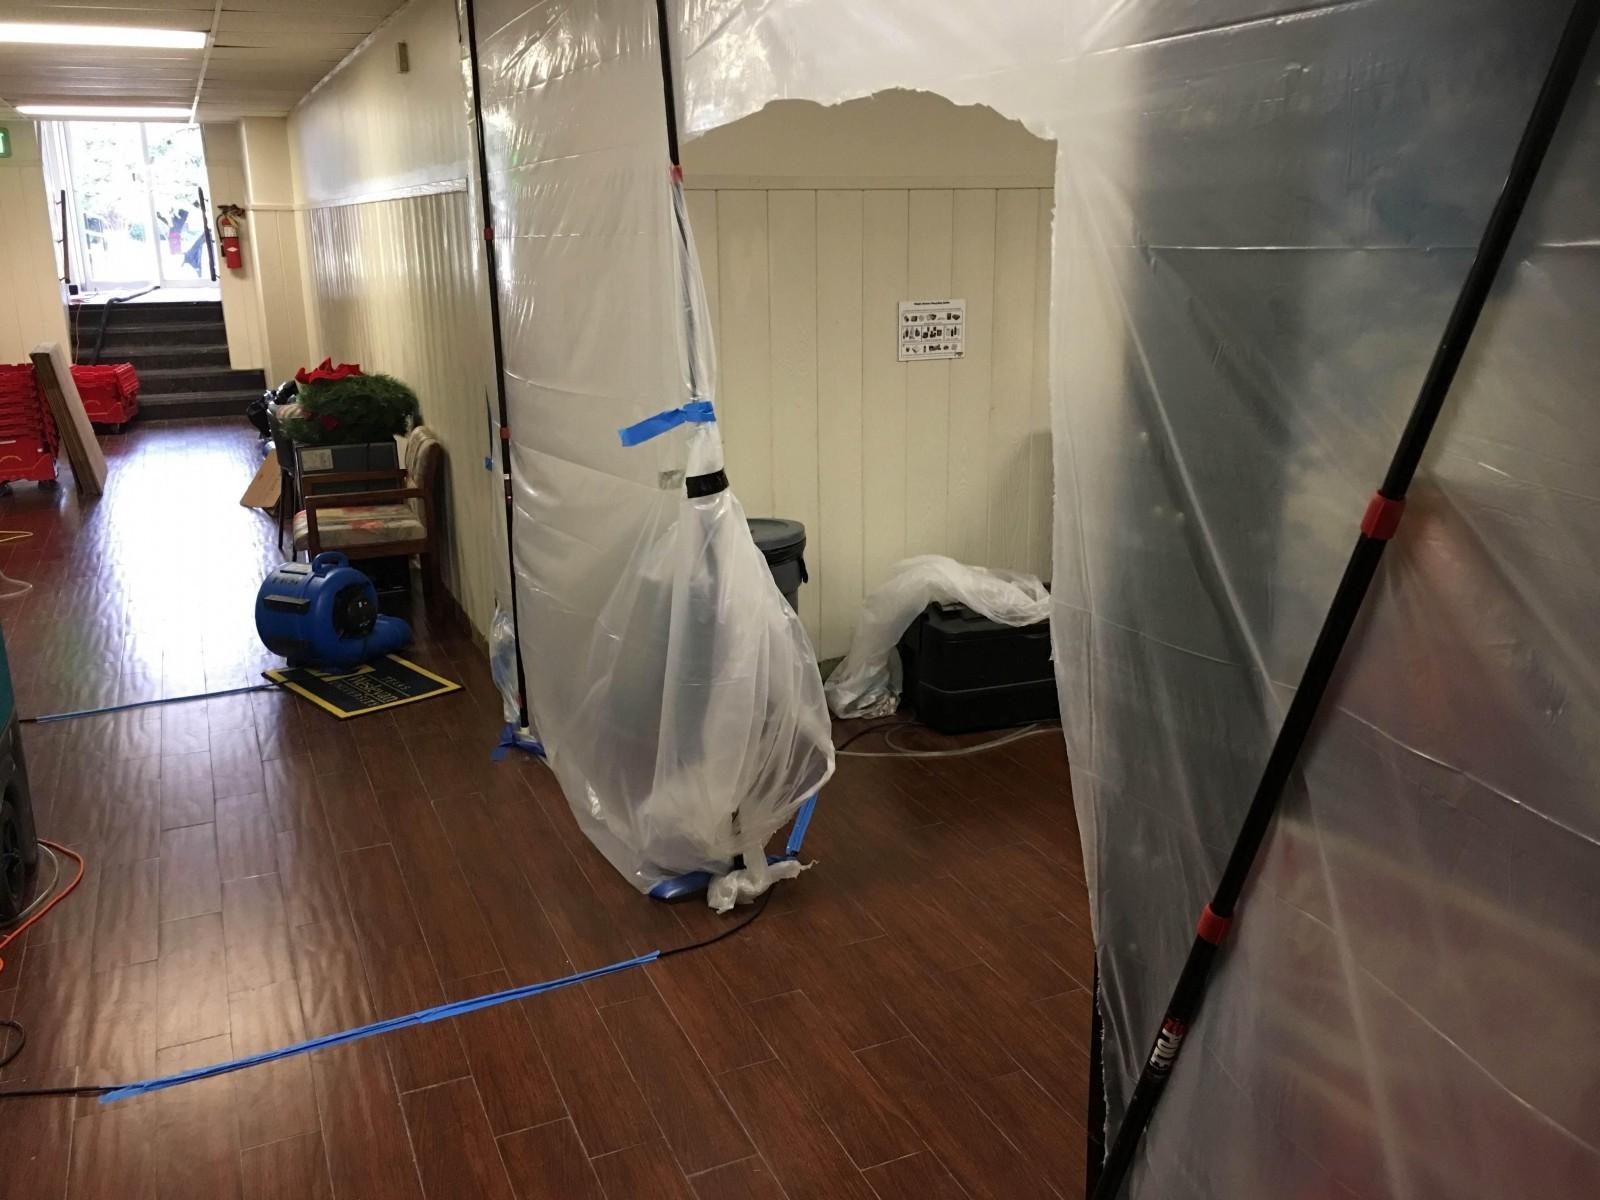 Photo by Ricardo Cortez Cleanup continues in the Oneal-Sells Administration Building.